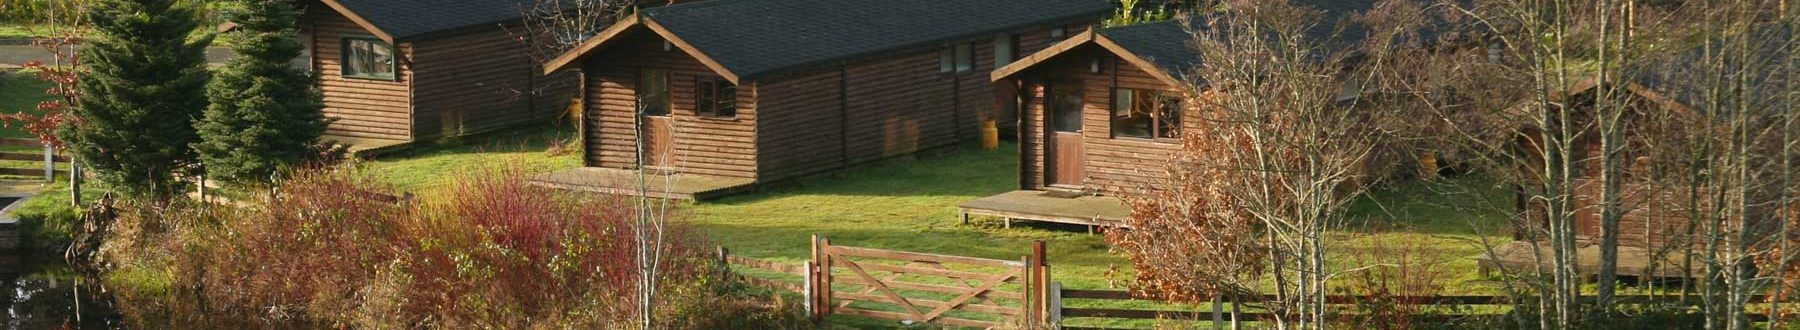 Hidden Valley Holiday Park | Accomodation | YourDaysOut